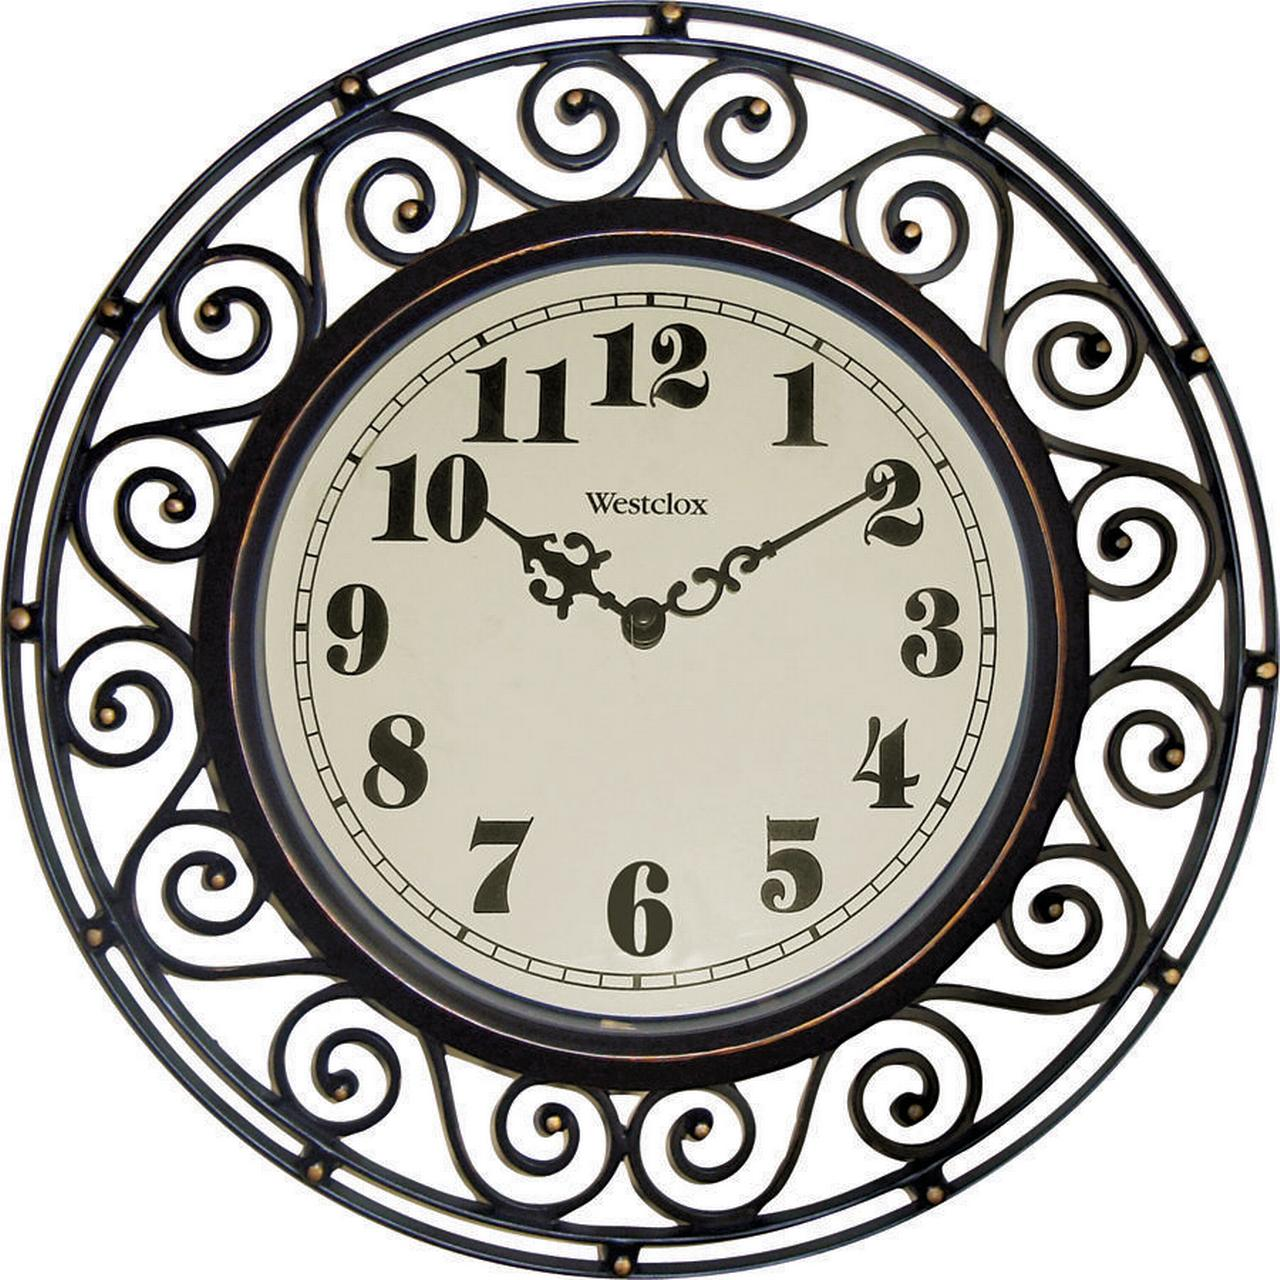 Westclox Wrought Iron Look Decor Wall Clock style# 32021A